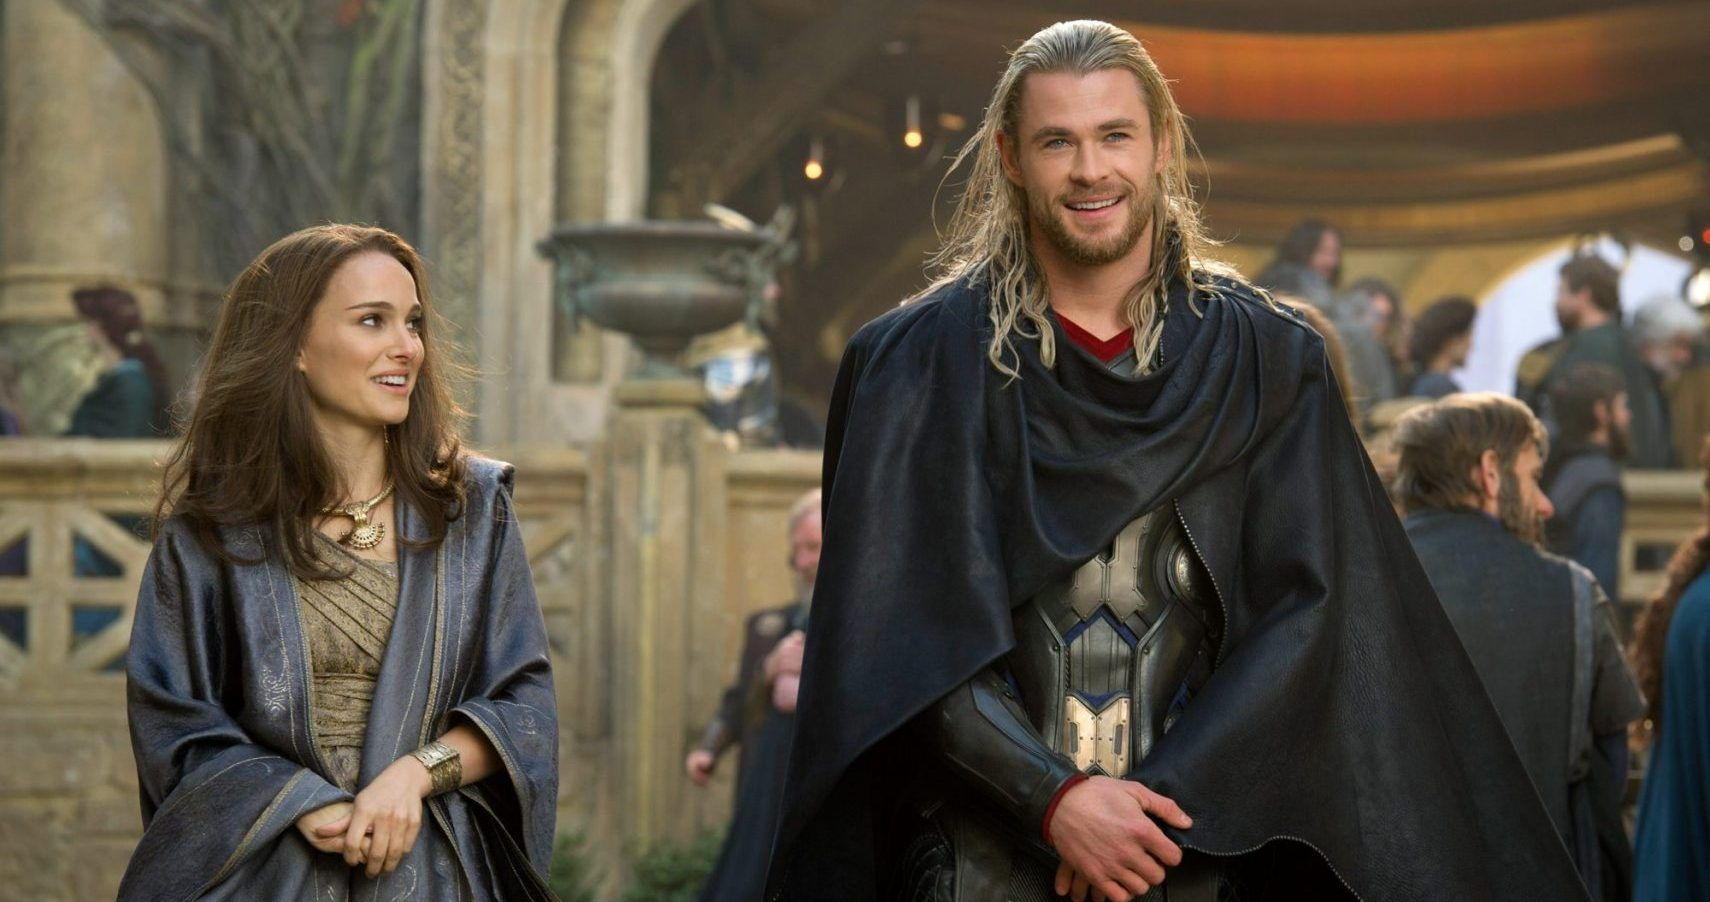 Here's The First Look At Natalie Portman As Jane Foster In 'Thor: Love and Thunder'